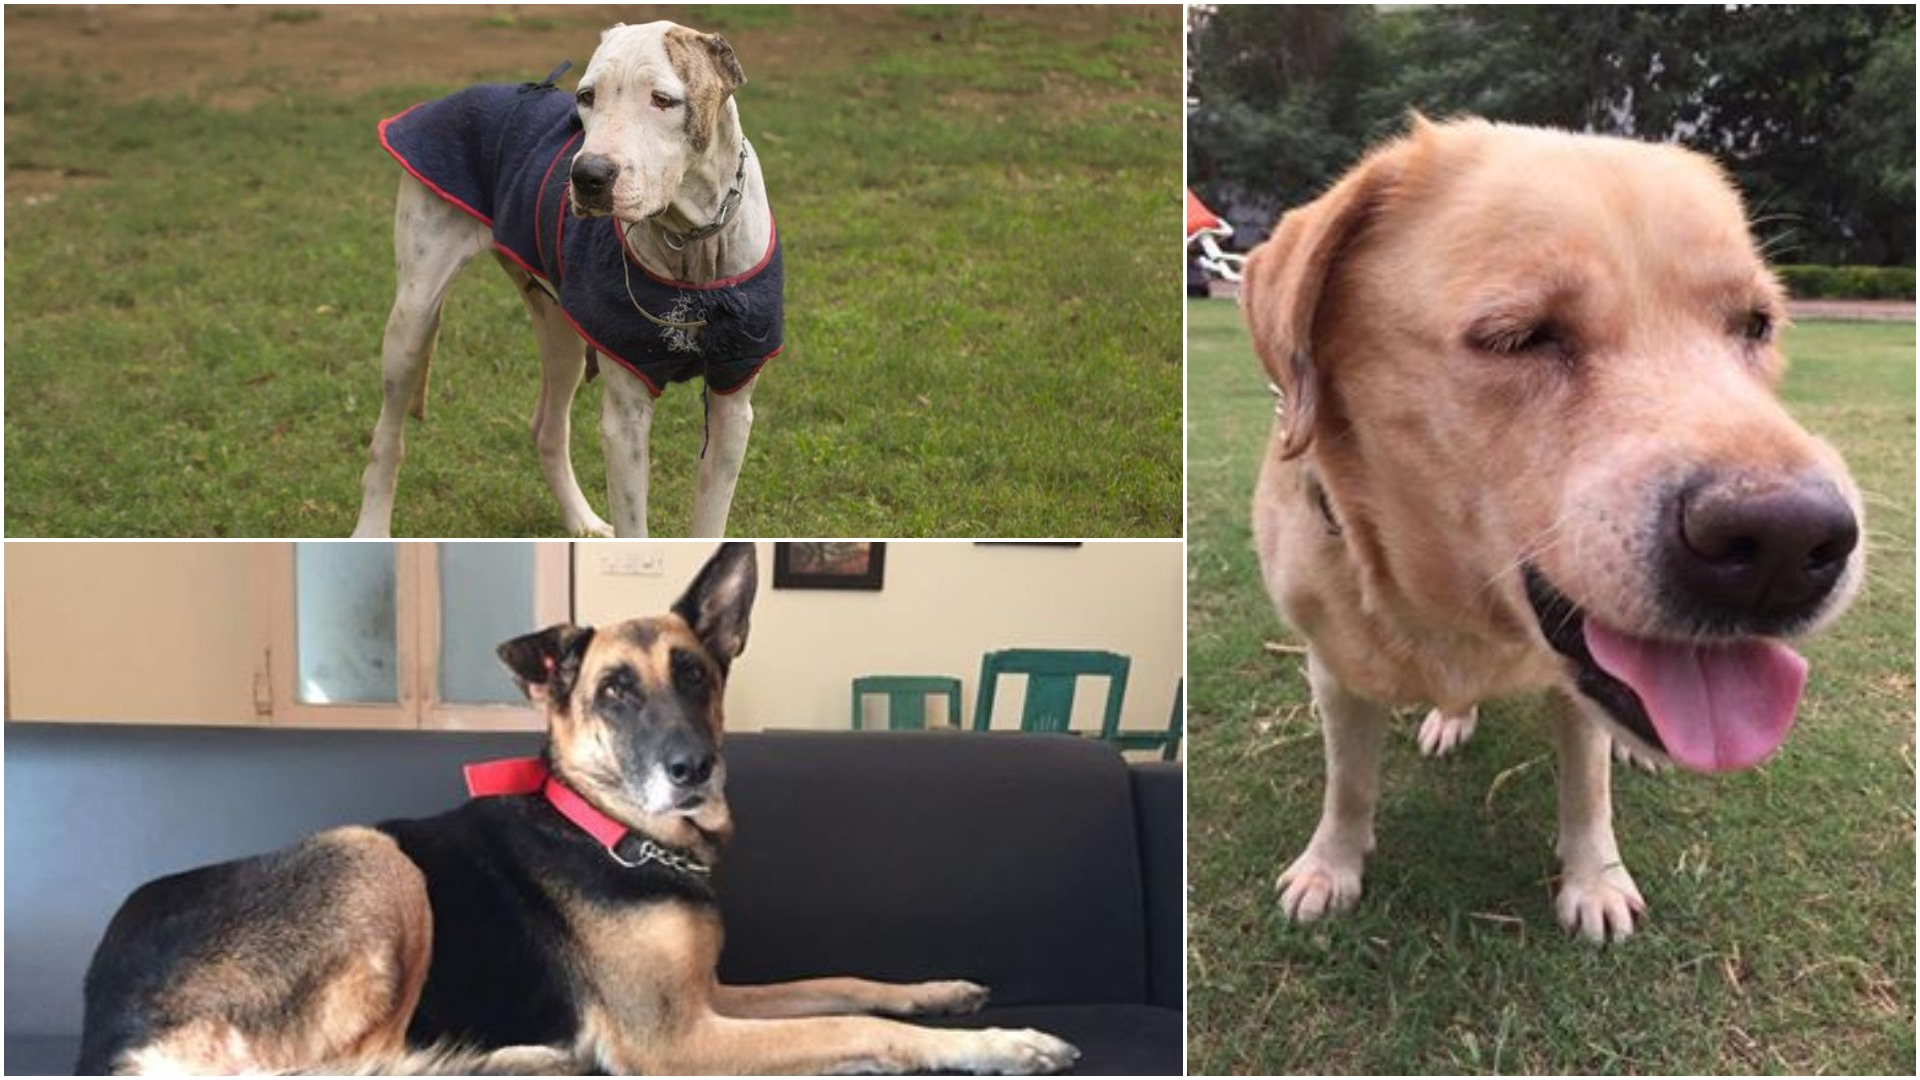 Looking for homes: (clockwise from right) Chia(7-8yrs), Lara (7yrs), Lady(4-5yrs).